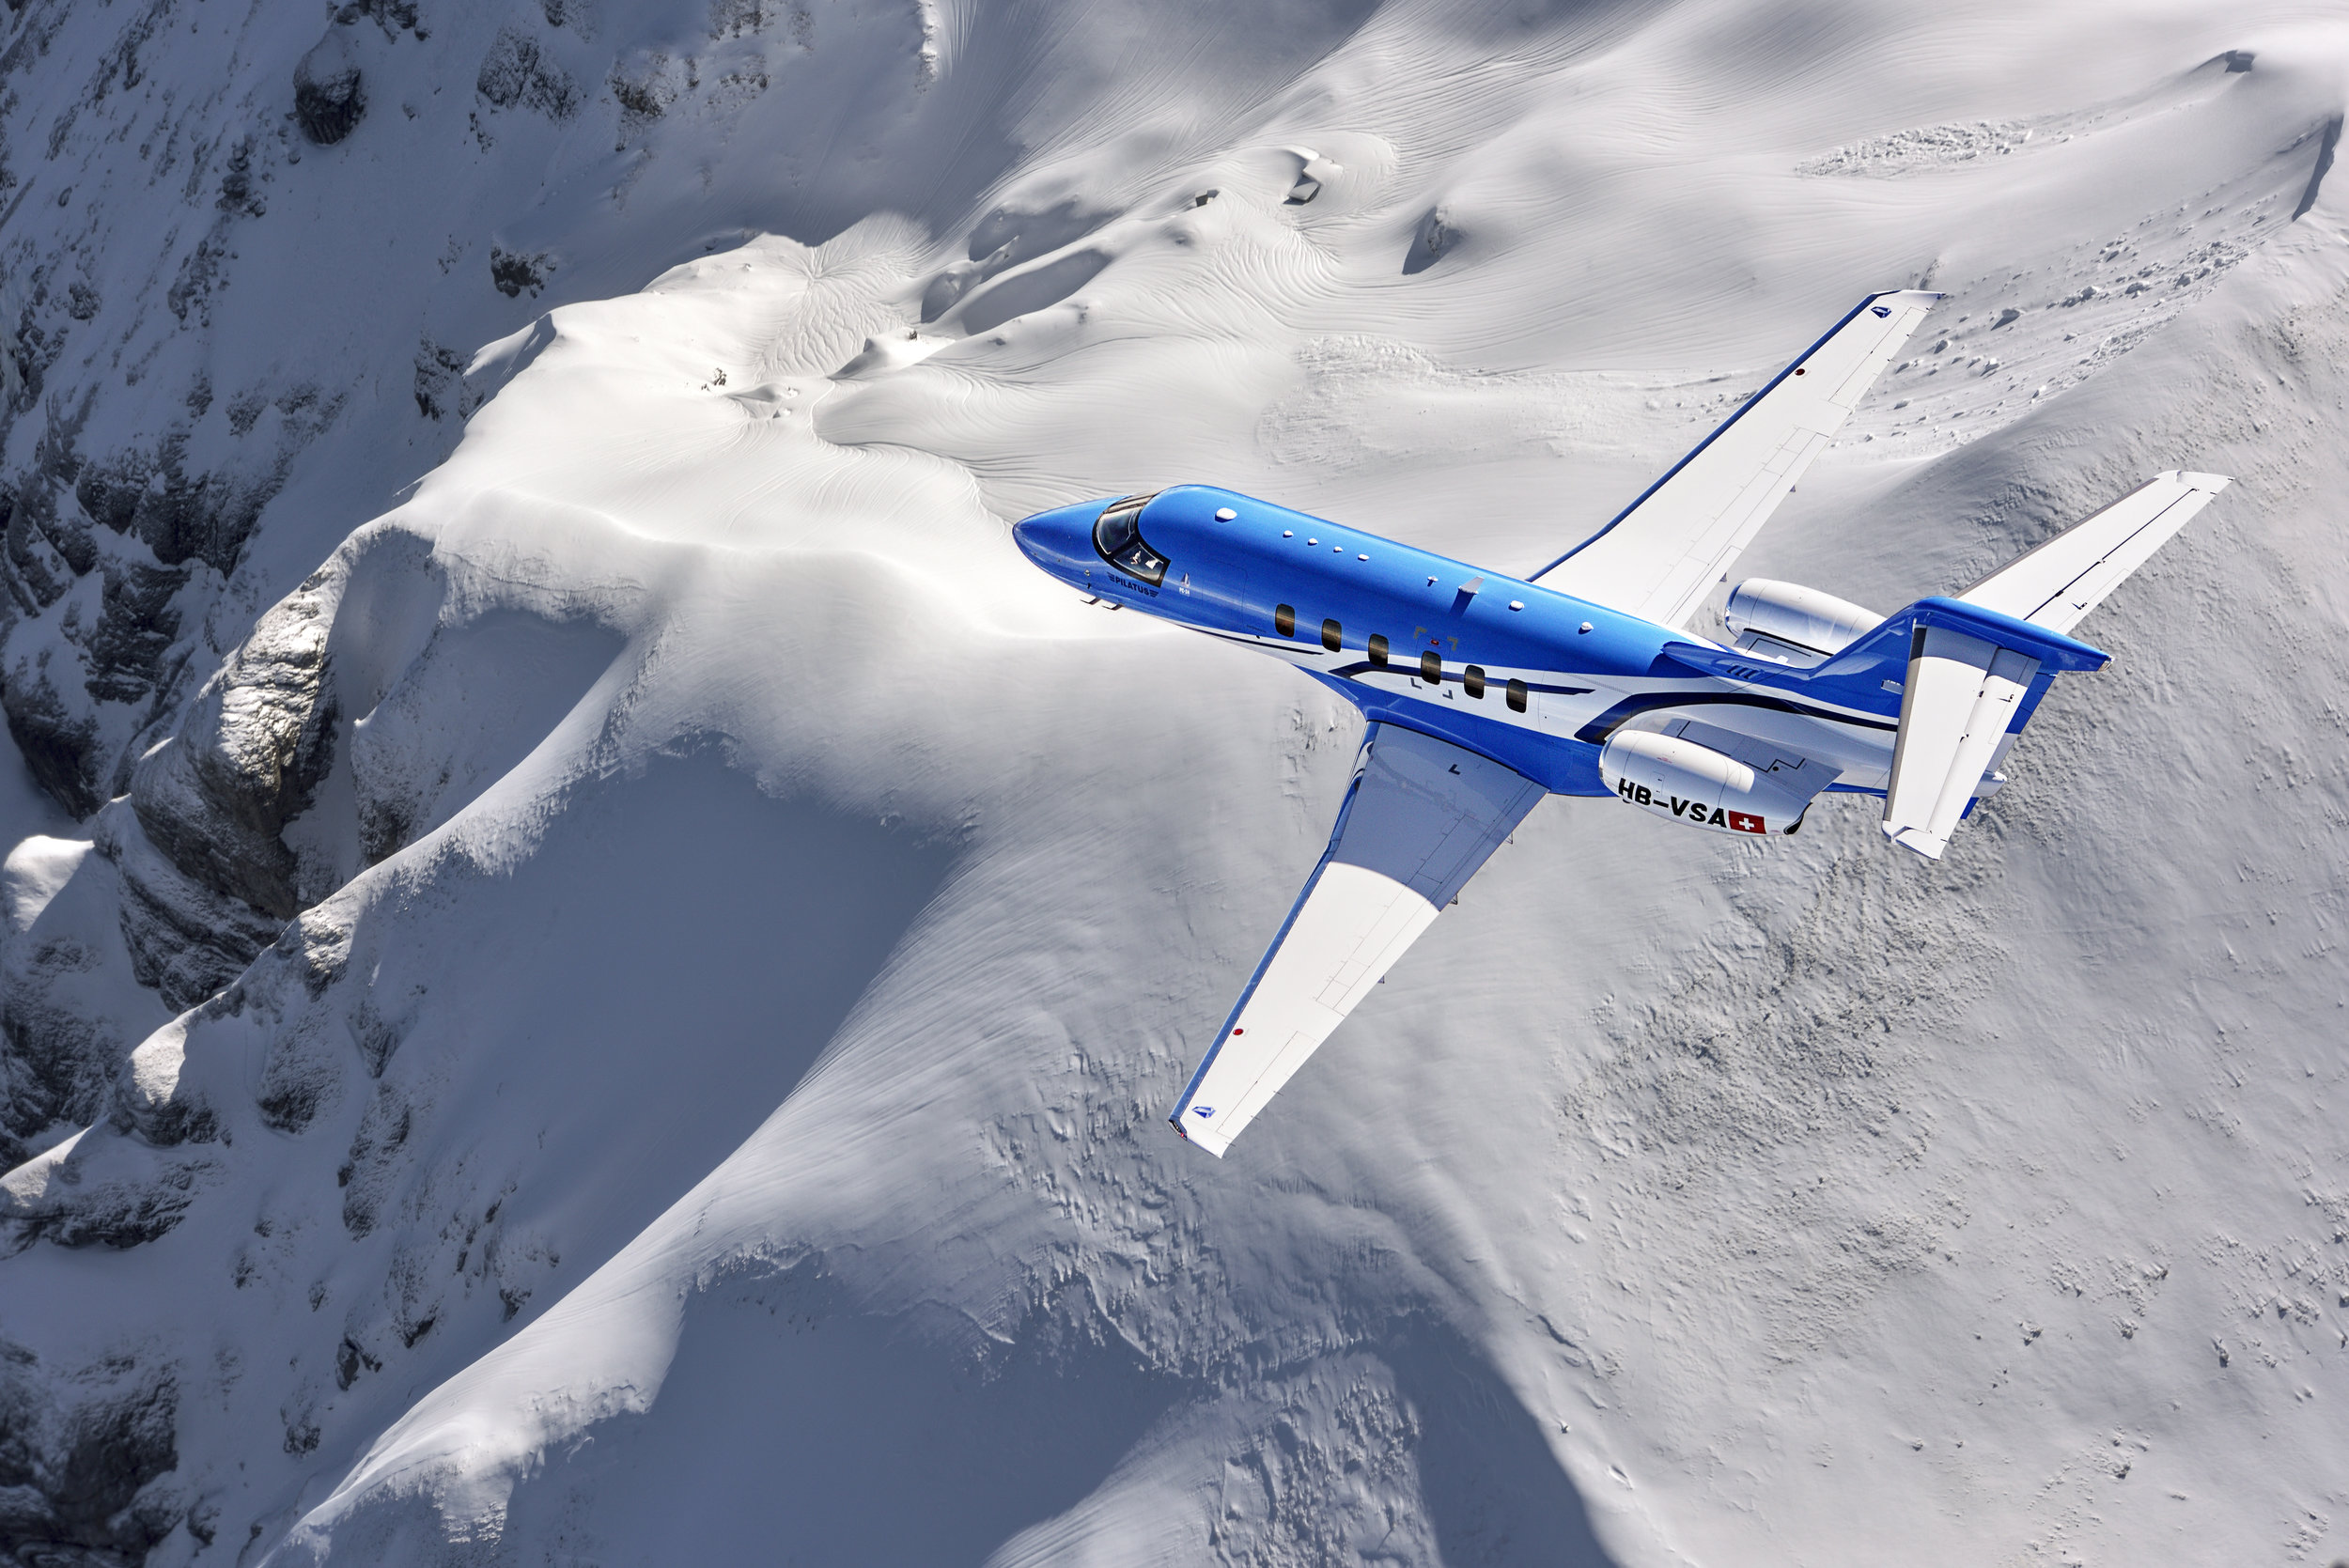 Image from: Pilatus Aircraft